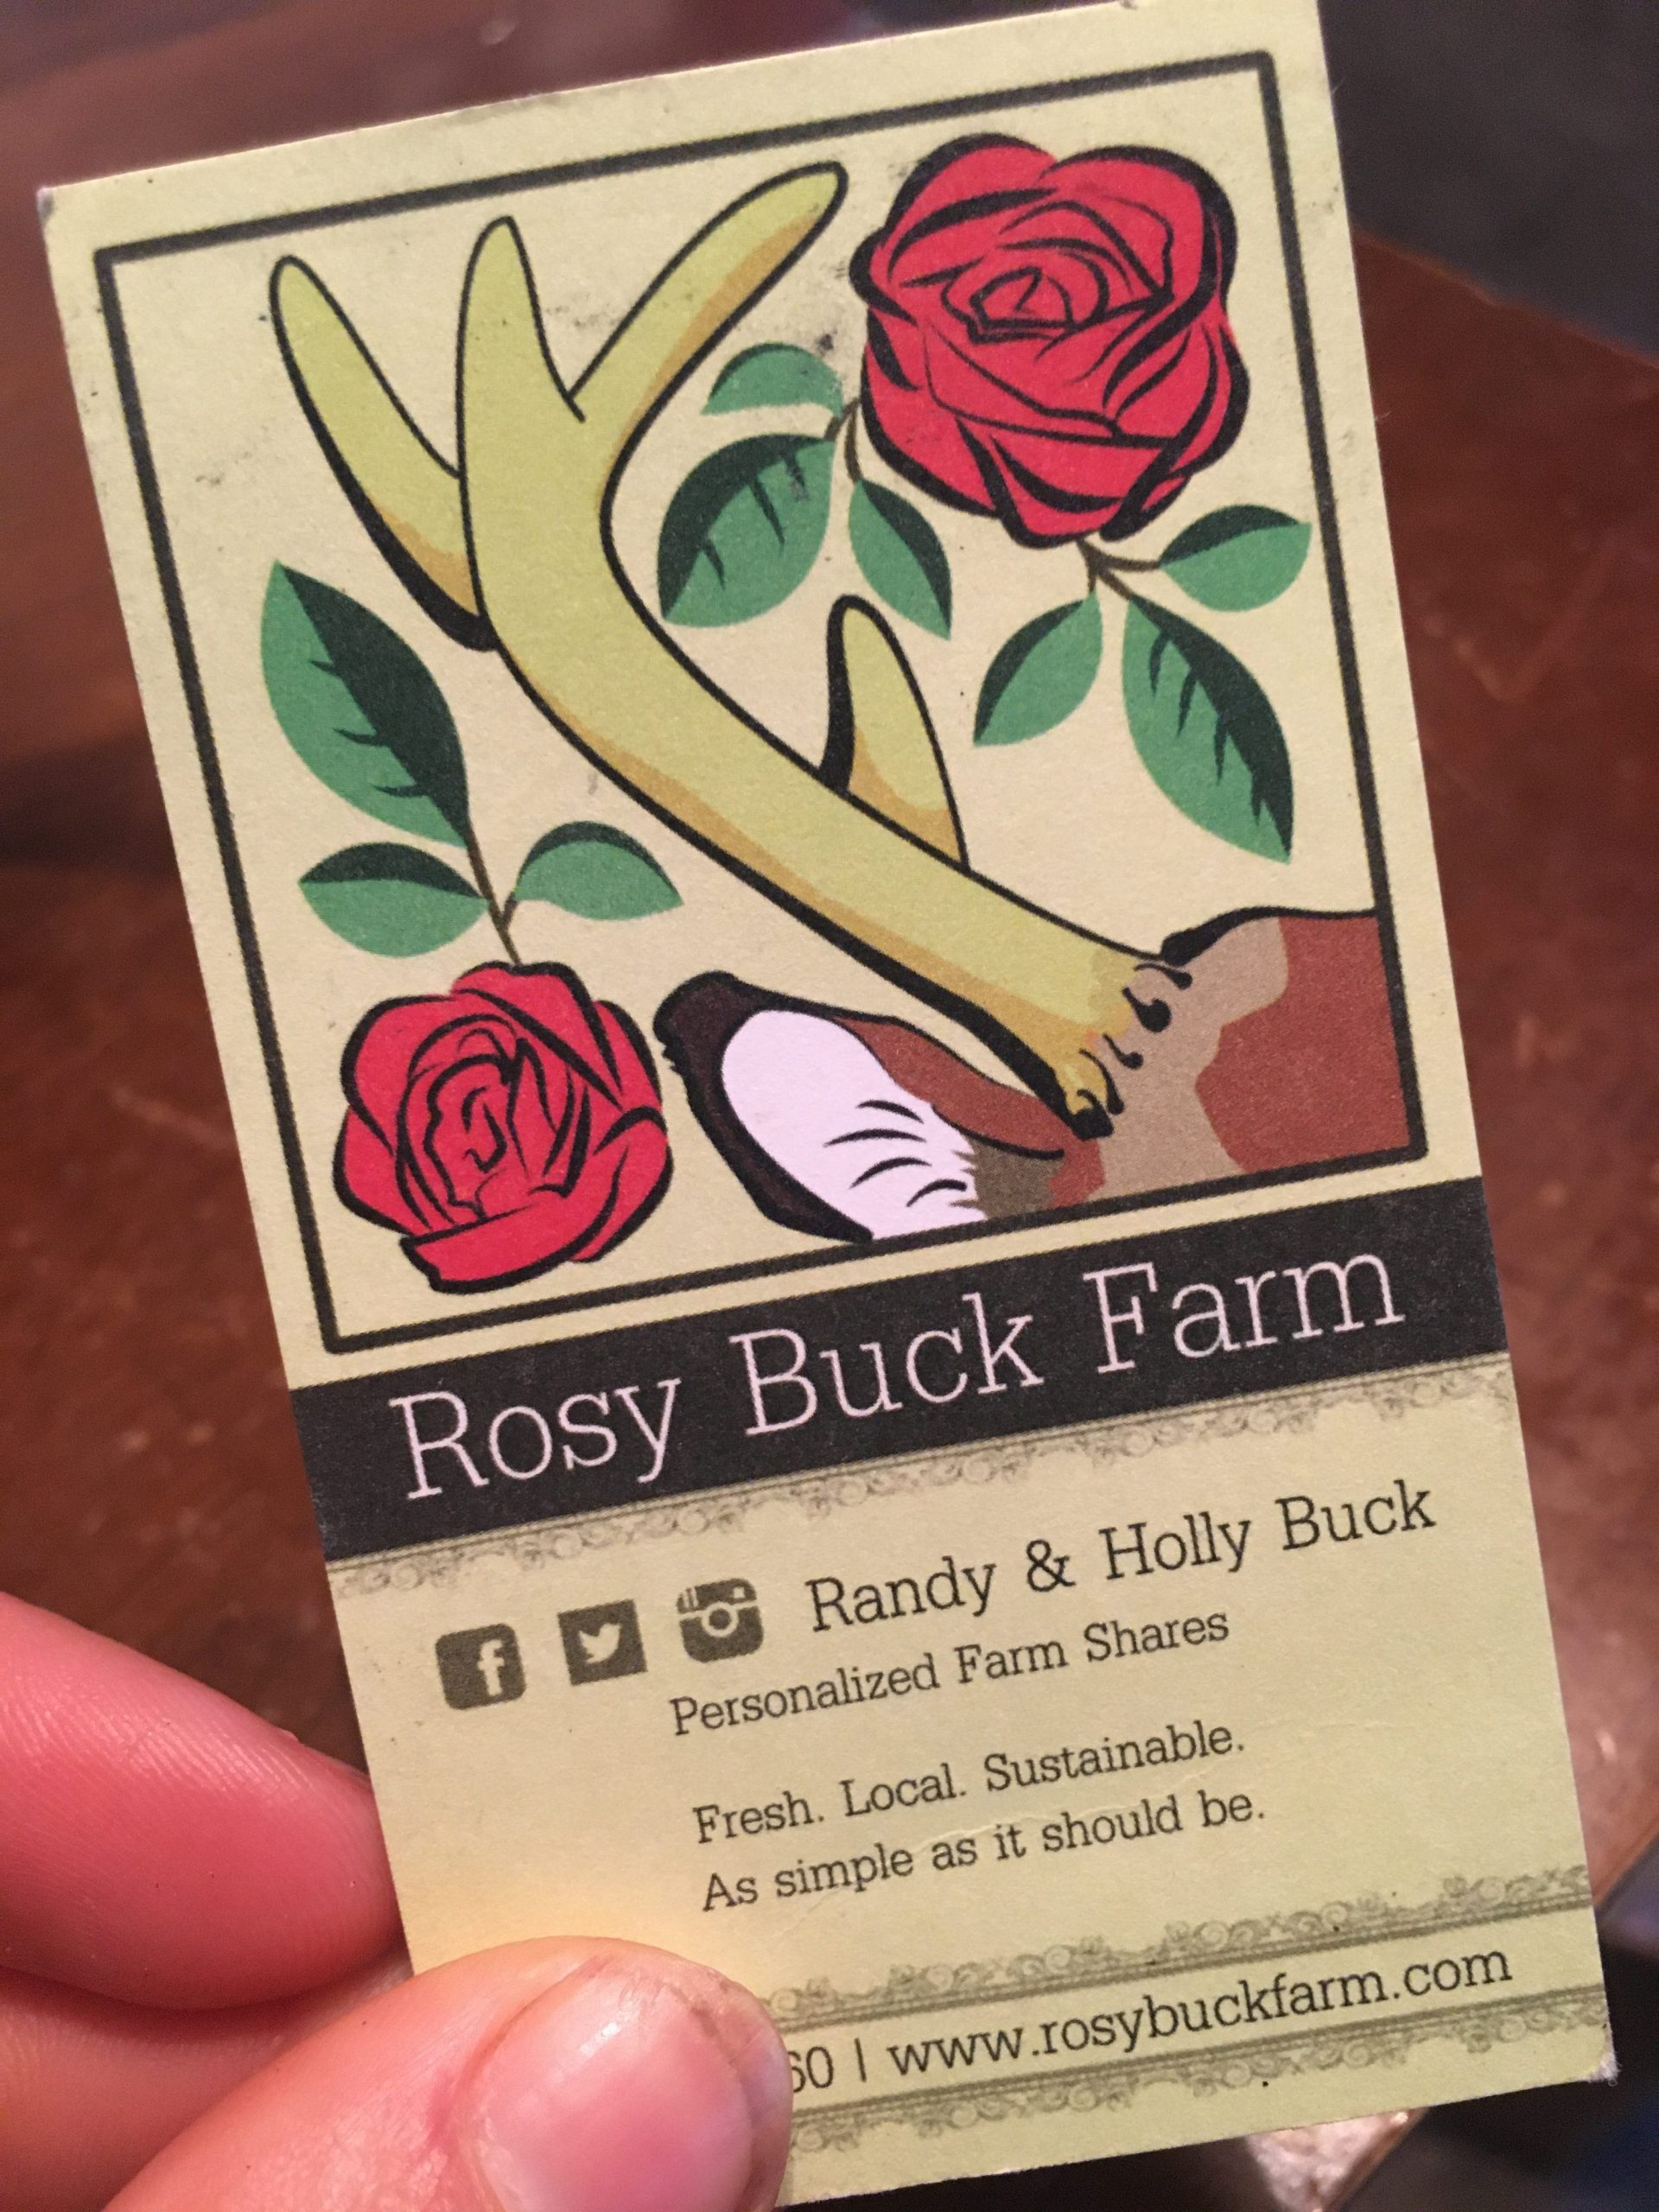 Rosy Buck Farm business card